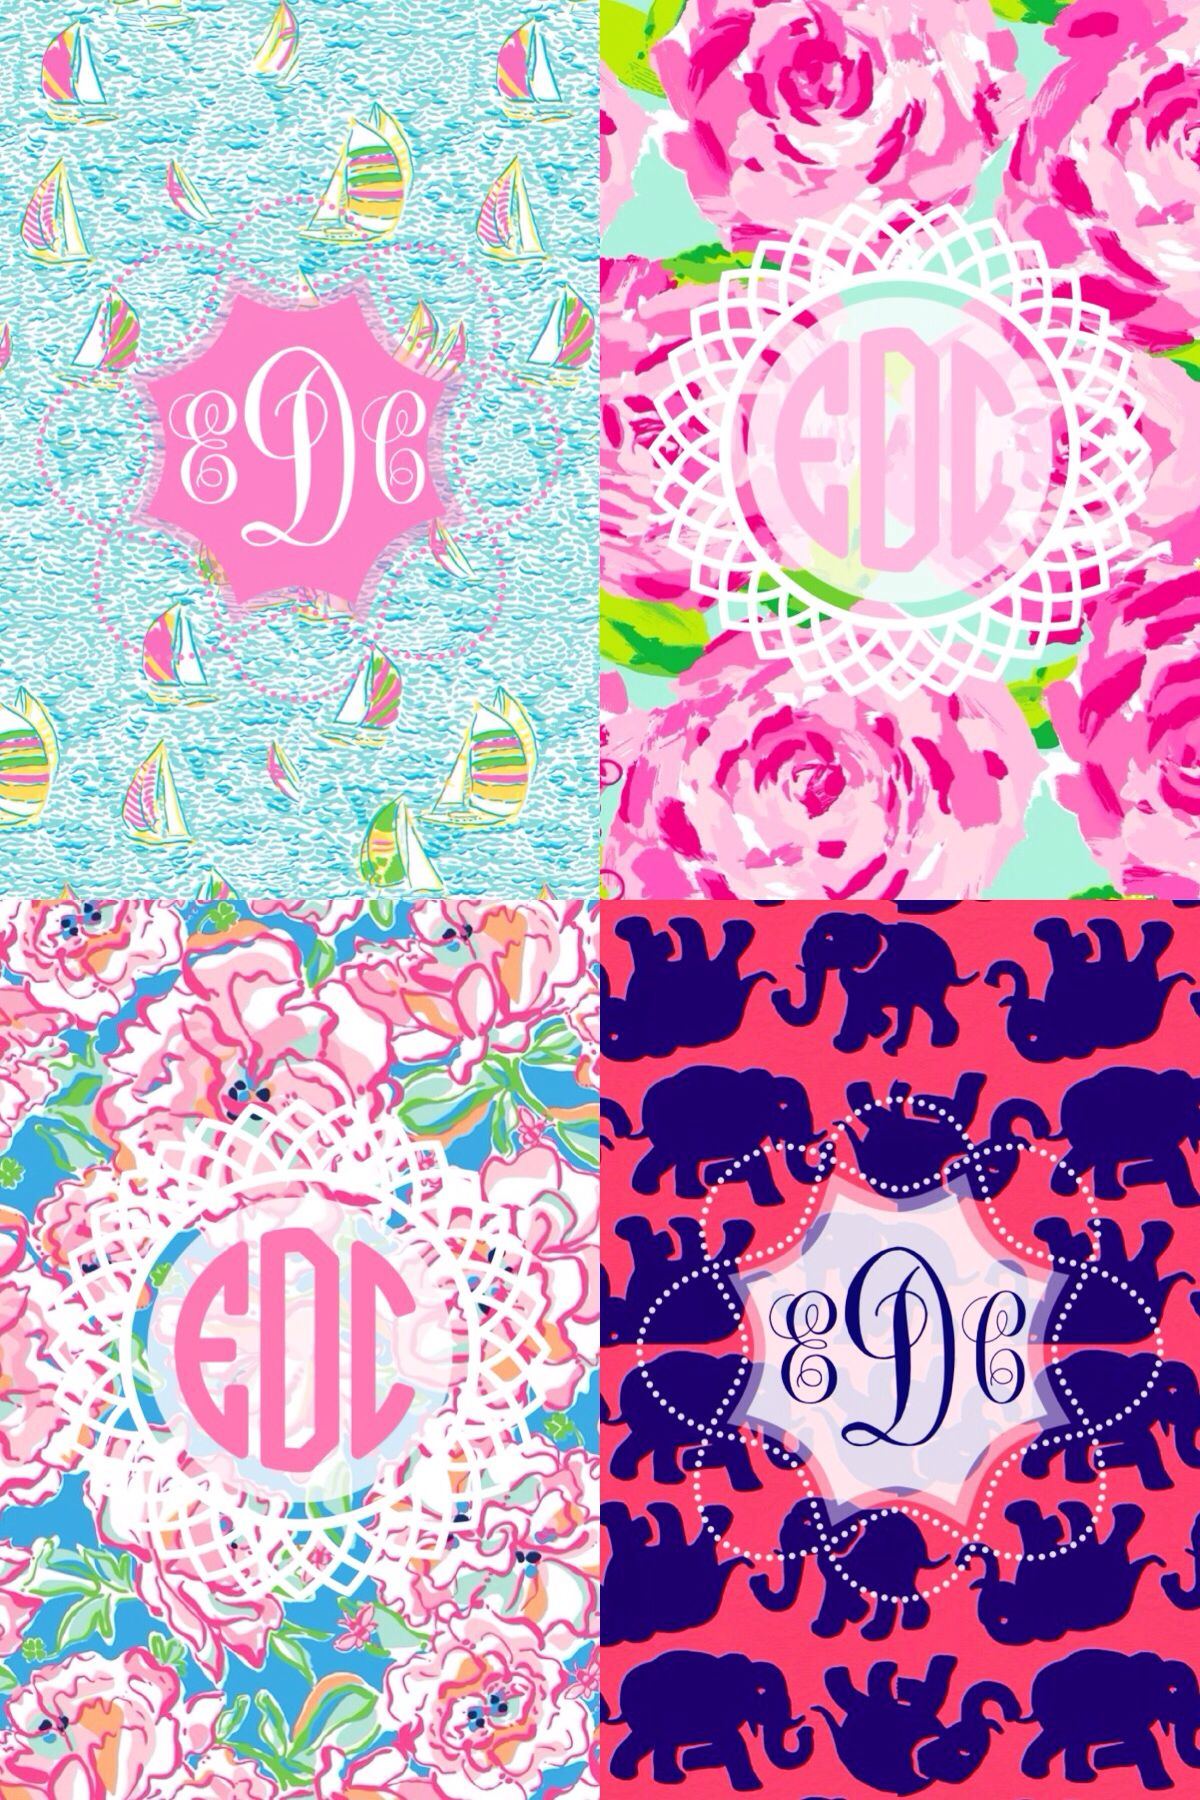 Pin By Ann S On Stationery Printables Fonts Monogram Wallpaper Lilly Pulitzer Monogram Wallpaper Lilly Pulitzer Iphone Wallpaper